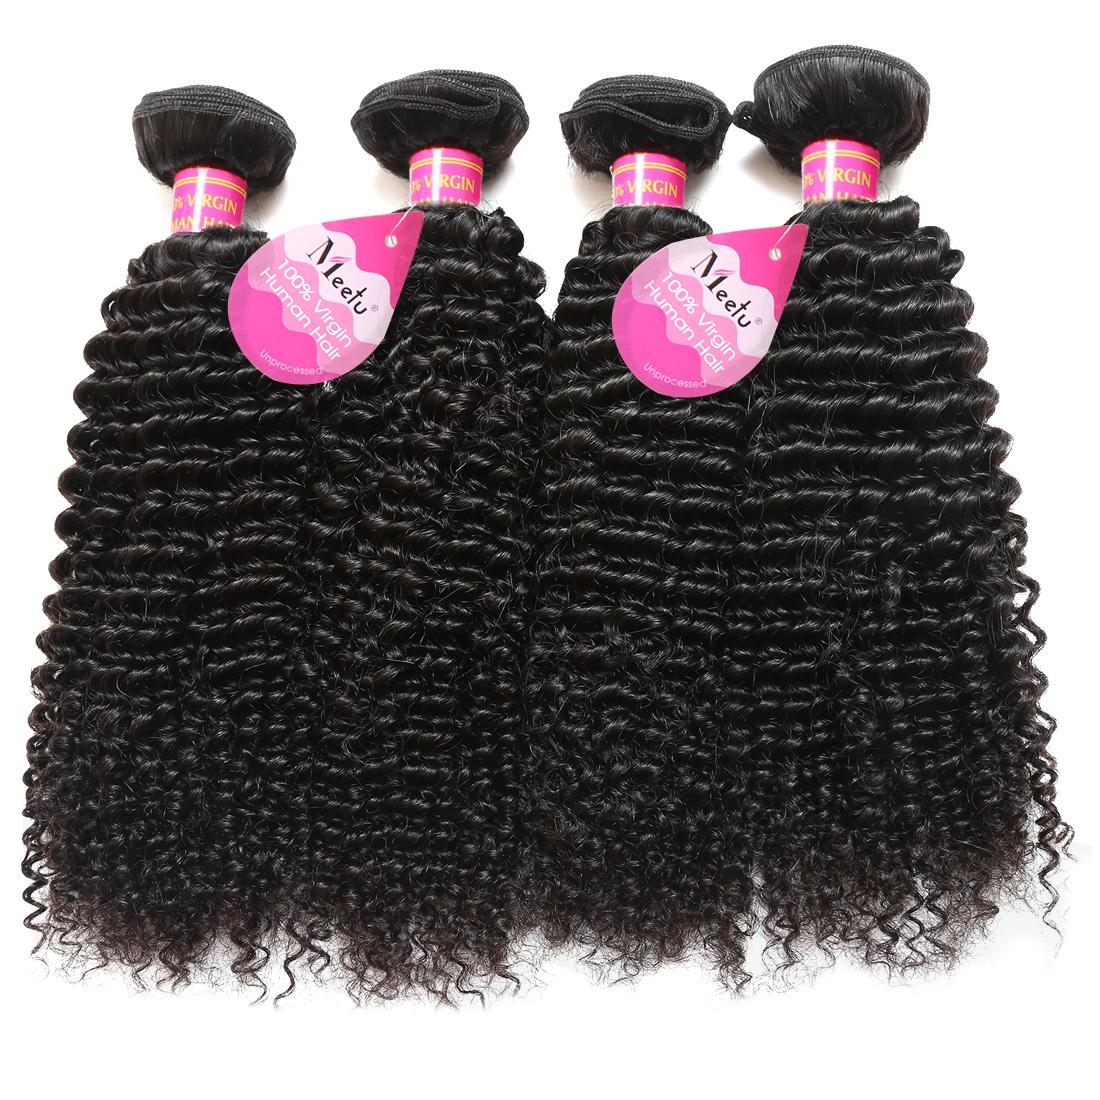 Brazilian Peruvian Malaysian Hair Natural Curly Human Jerry Curl Hair Weaves 4 Bundles Unprocessed Vrigin Hair Extensions For Black Women